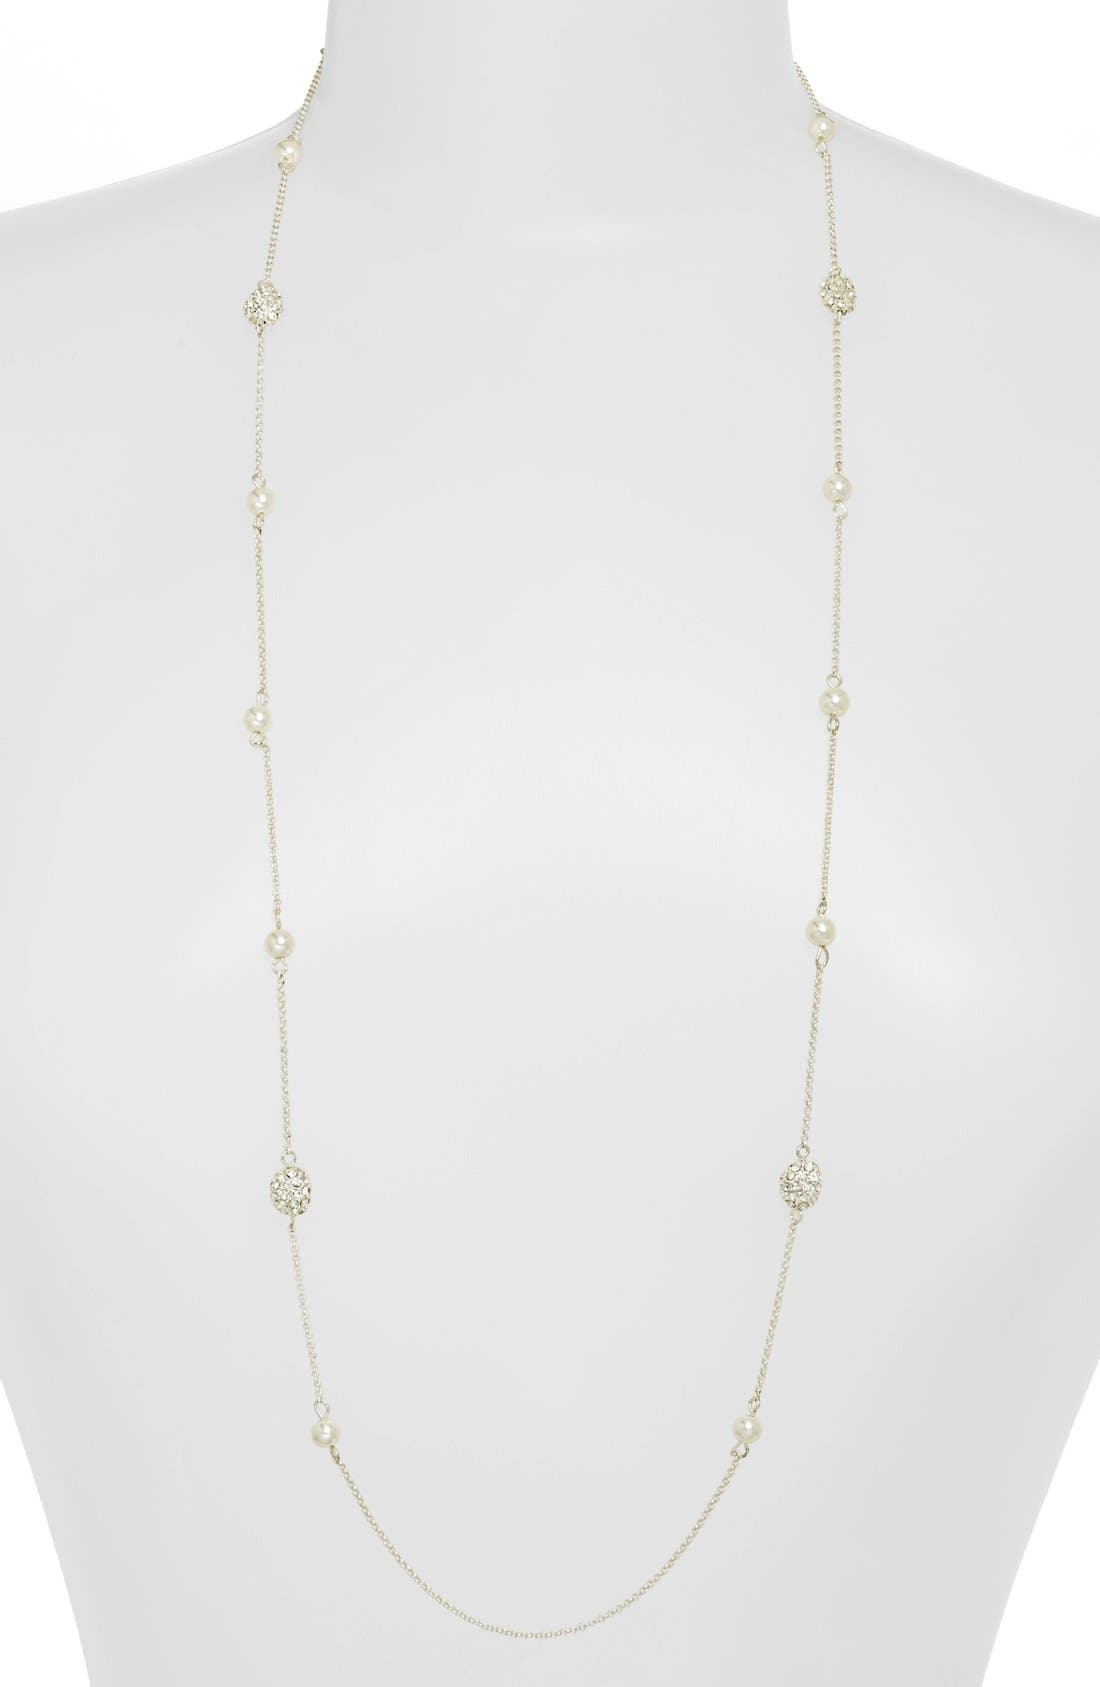 Main Image - Lauren Ralph Lauren Long Glass Pearl & Pavé Bead Illusion Necklace